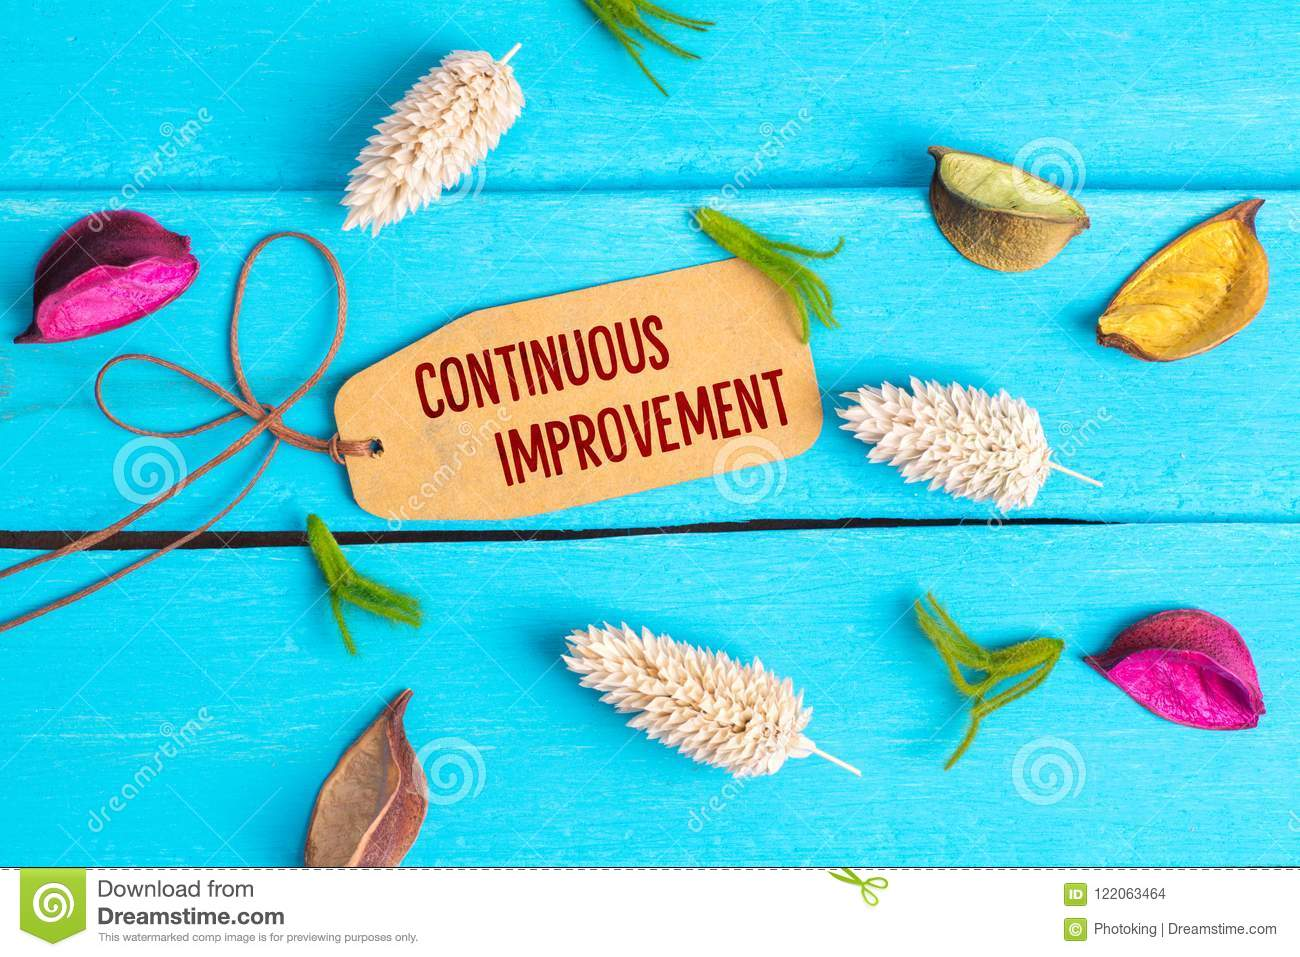 Continuous improvement text on paper tag